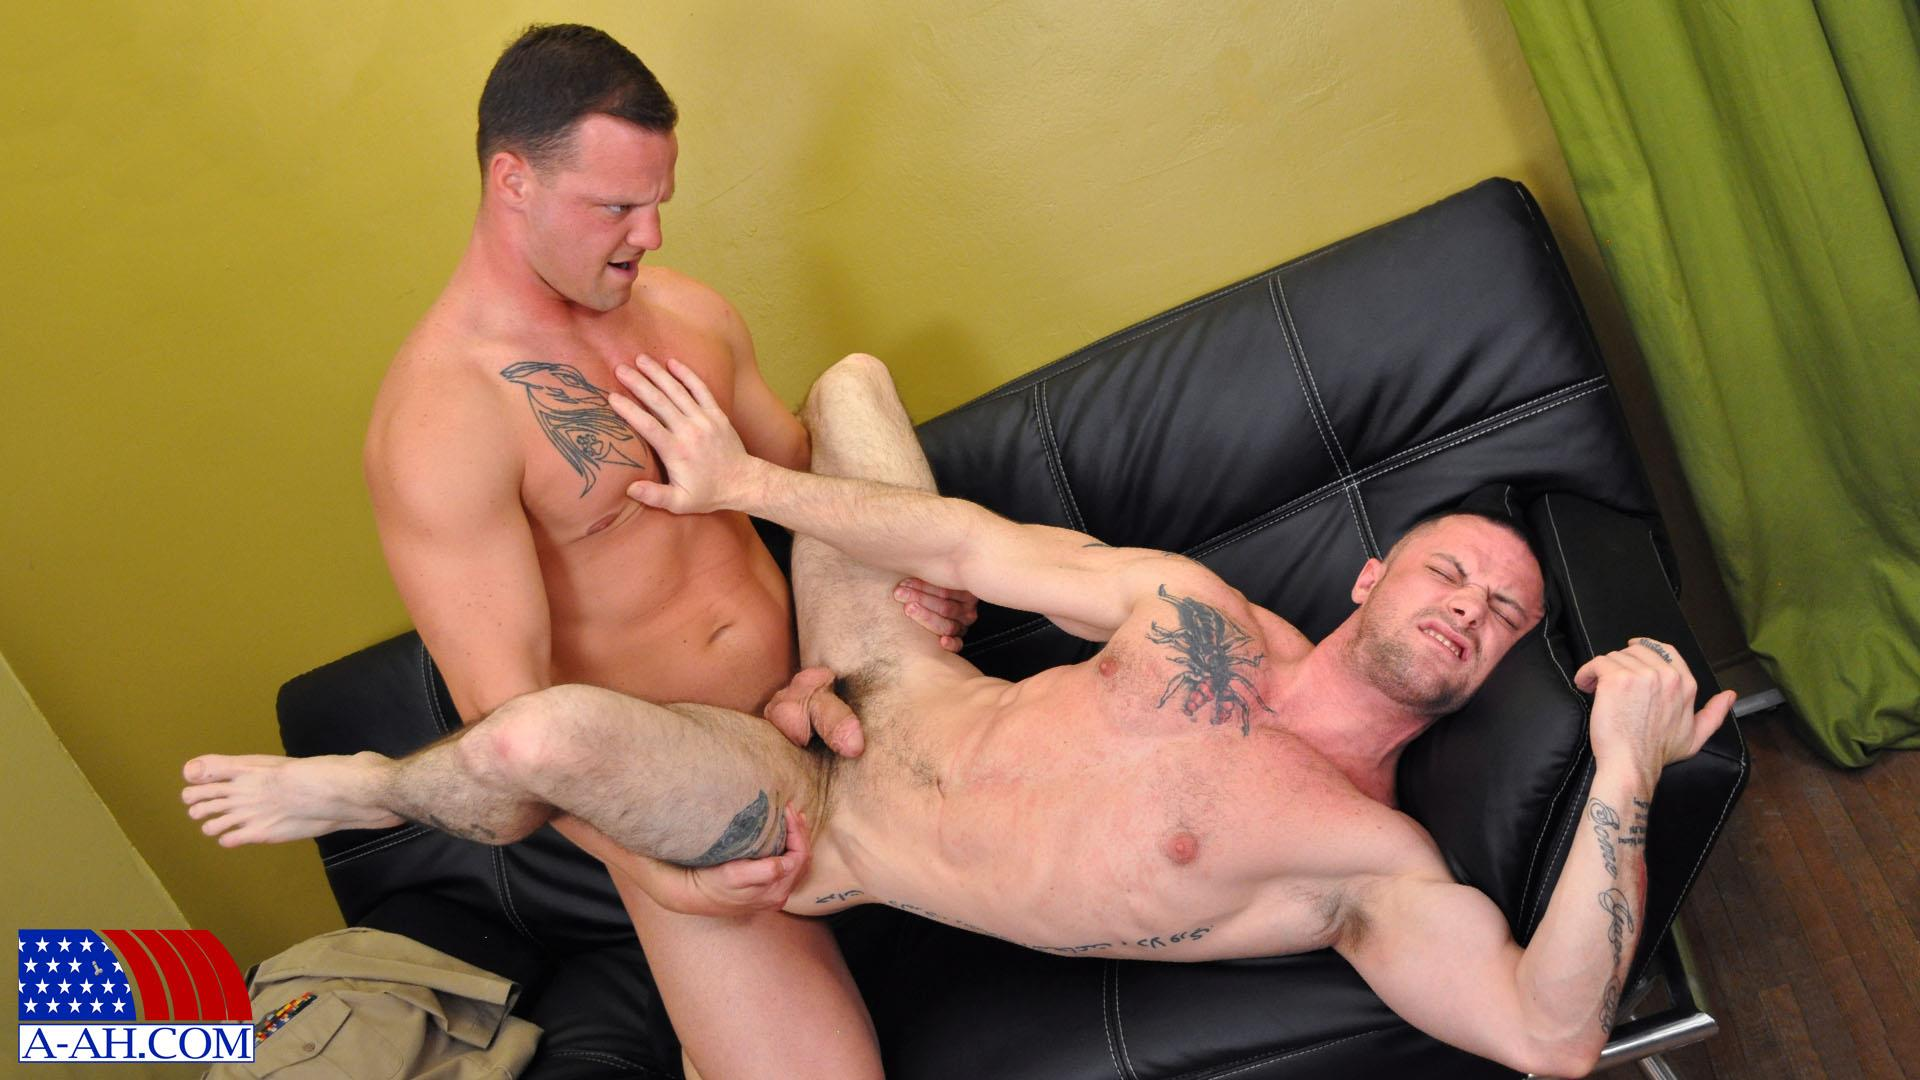 All American Heroes NAVY CORPSMAN LOGAN FUCKS SERGEANT MILES Military Guys Fucking Bareback Amateur Gay Porn 11